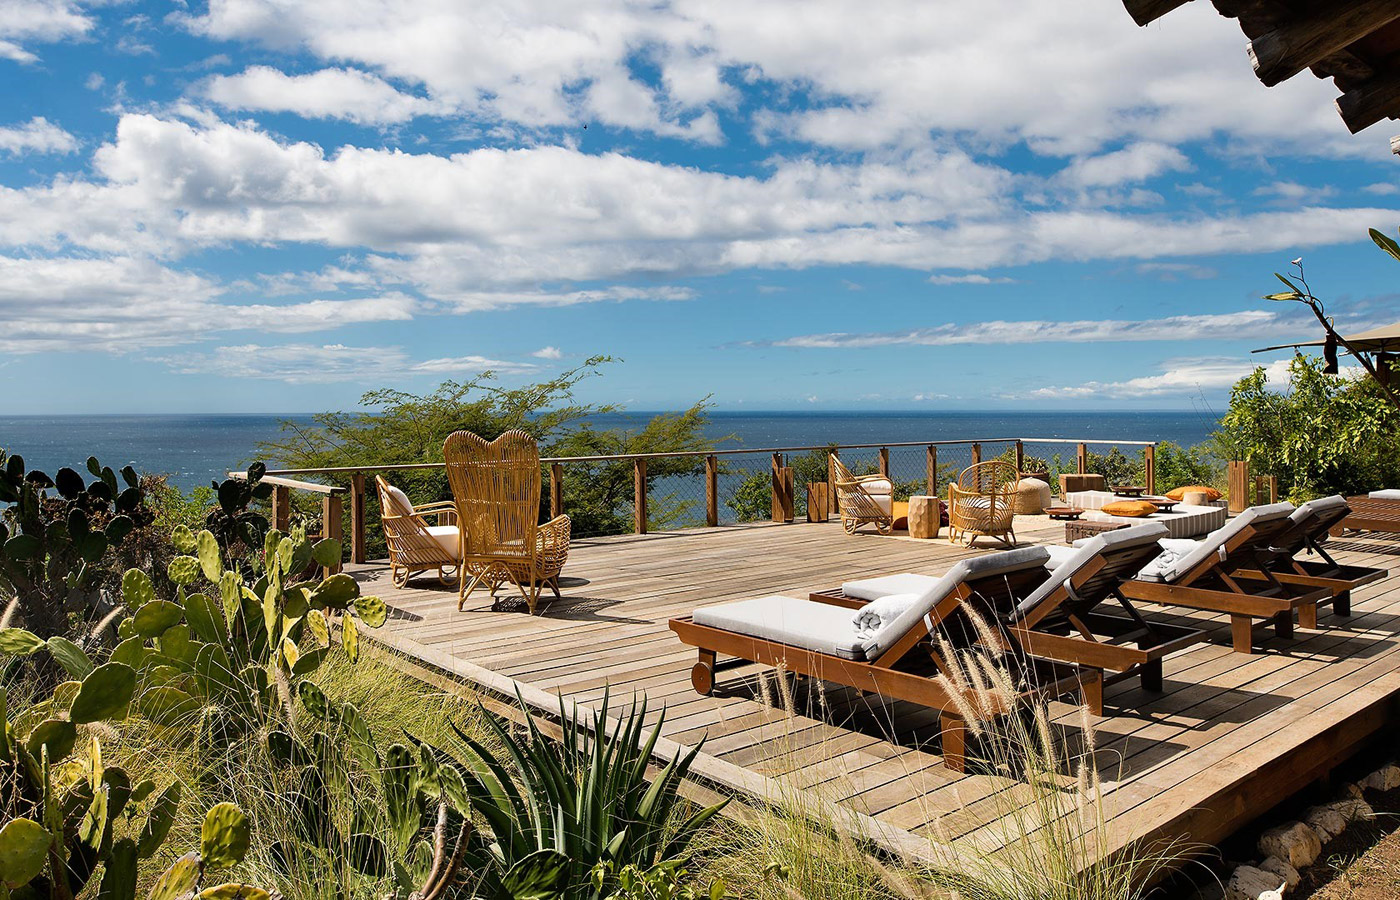 Kasiiya Papagayo - a luxury beach hotel in Costa Rica